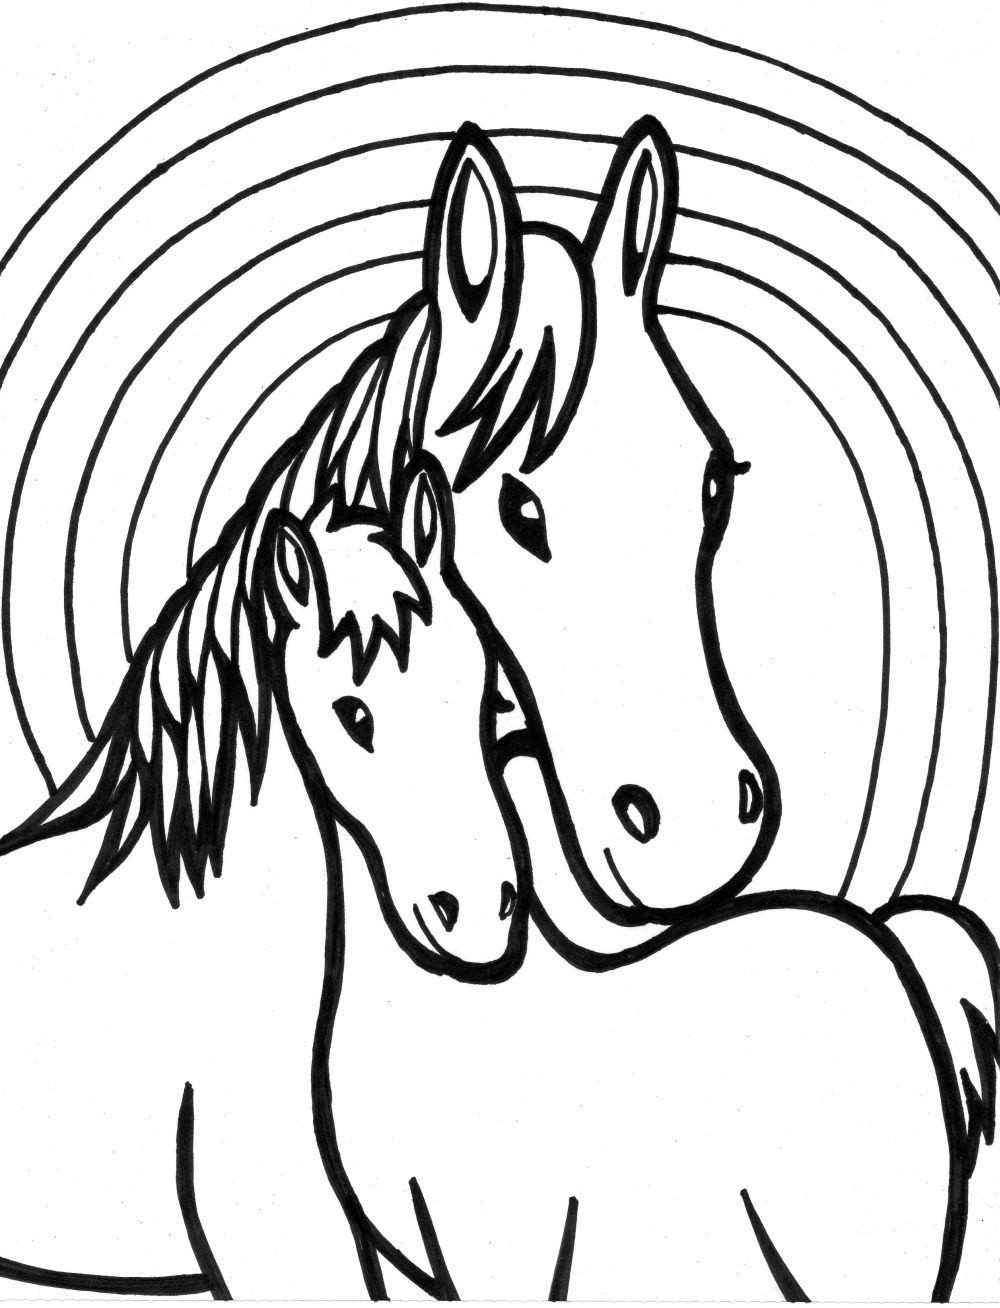 teenage girls coloring pages coloring pages for teenage girl at getdrawings free download pages teenage girls coloring